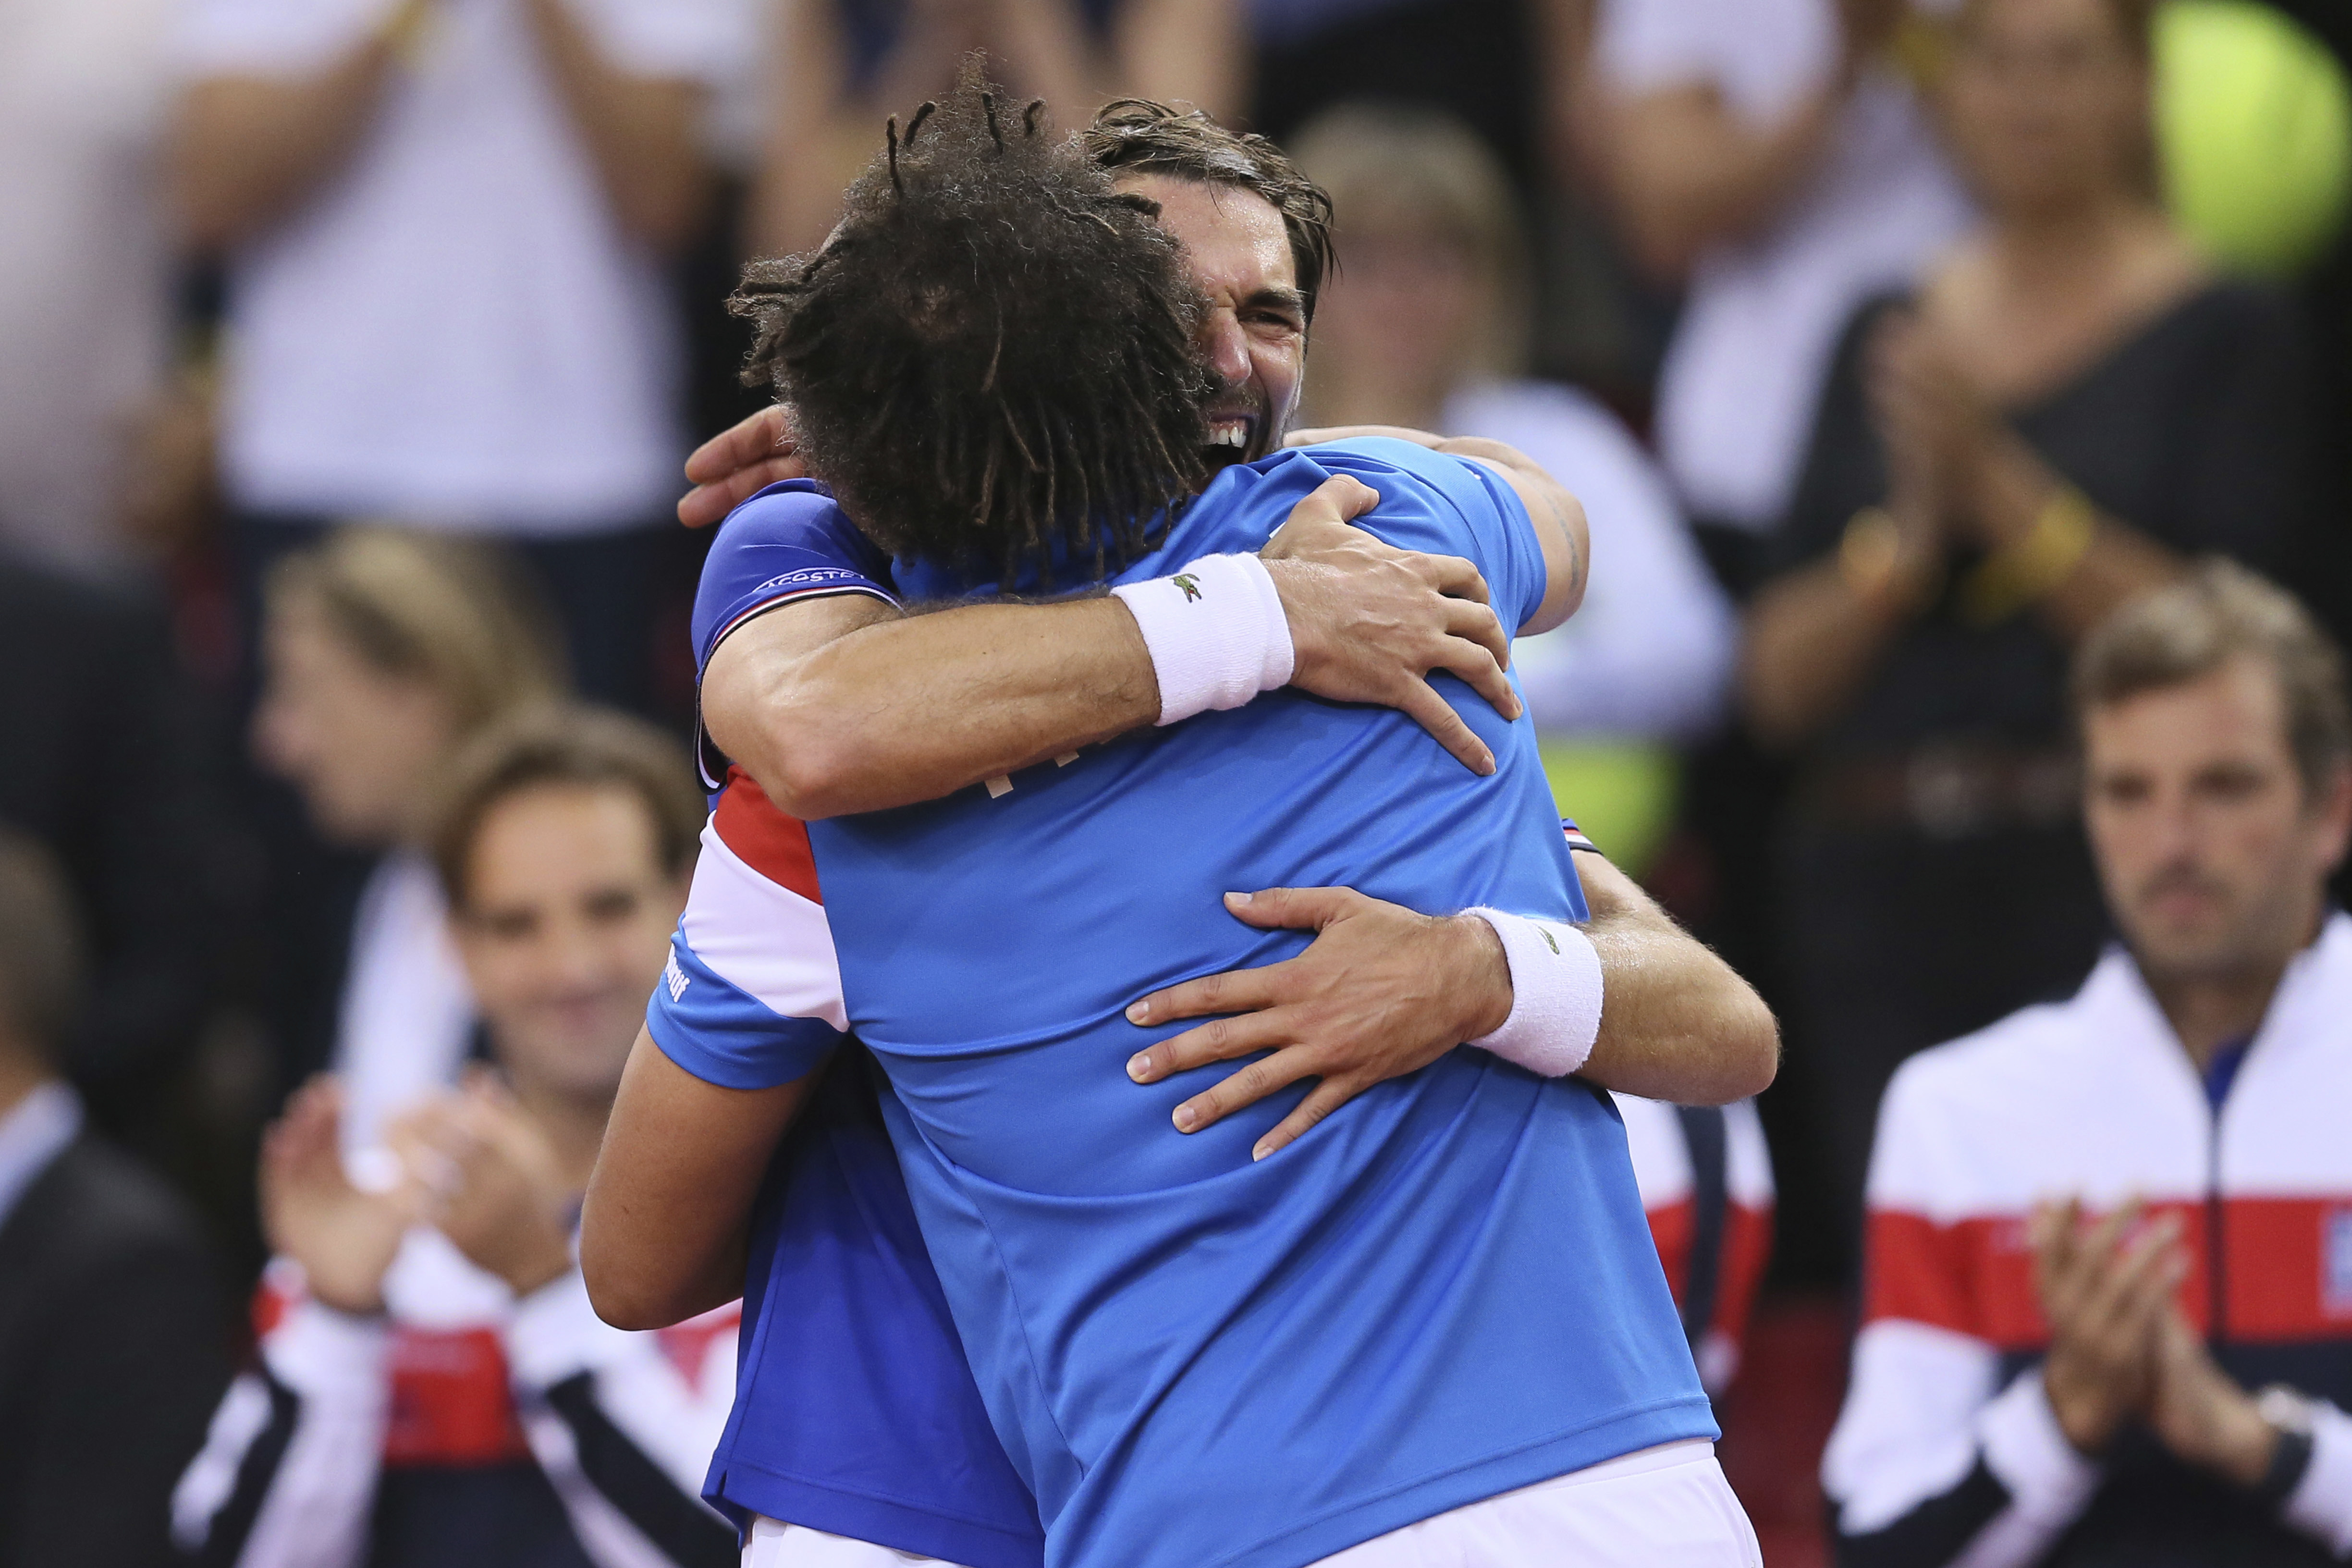 Jeremy Chardy of France jubilates with Yannick Noah at the end of their Davis Cup quarterfinal tennis match between France and Britain at the Kindarena Stadium of Rouen, France, Friday, April 7, 2017. (AP Photo/David Vincent)